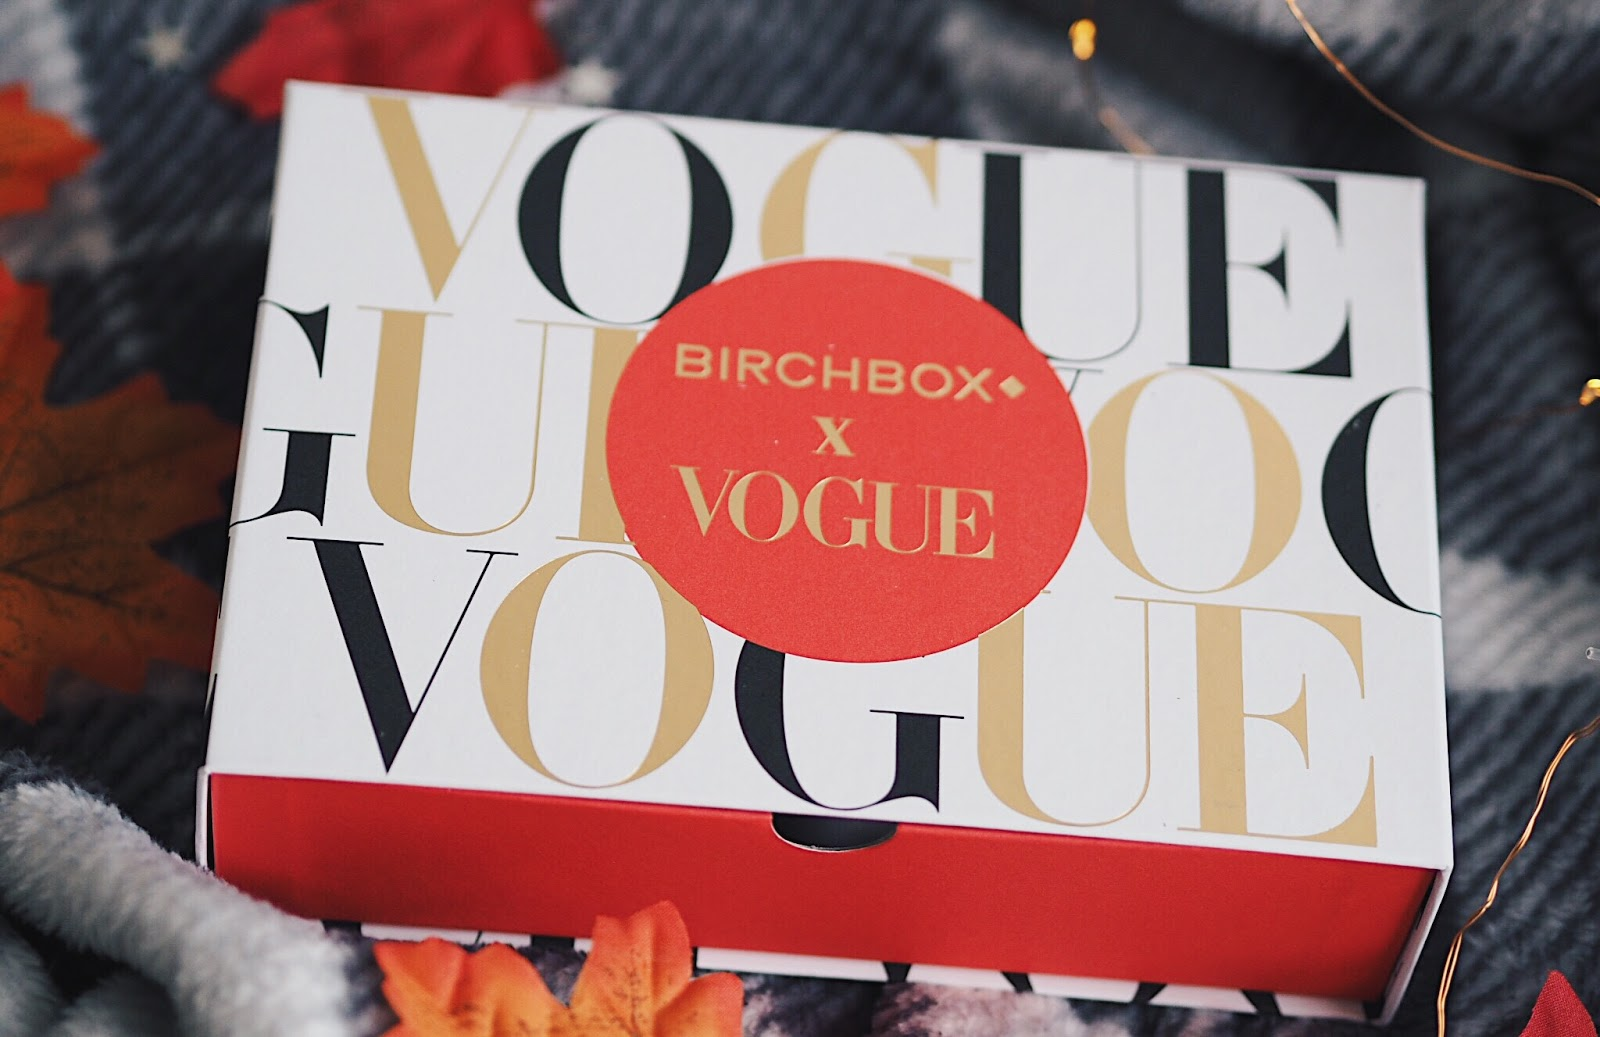 birchbox x vogue november 2017 uk